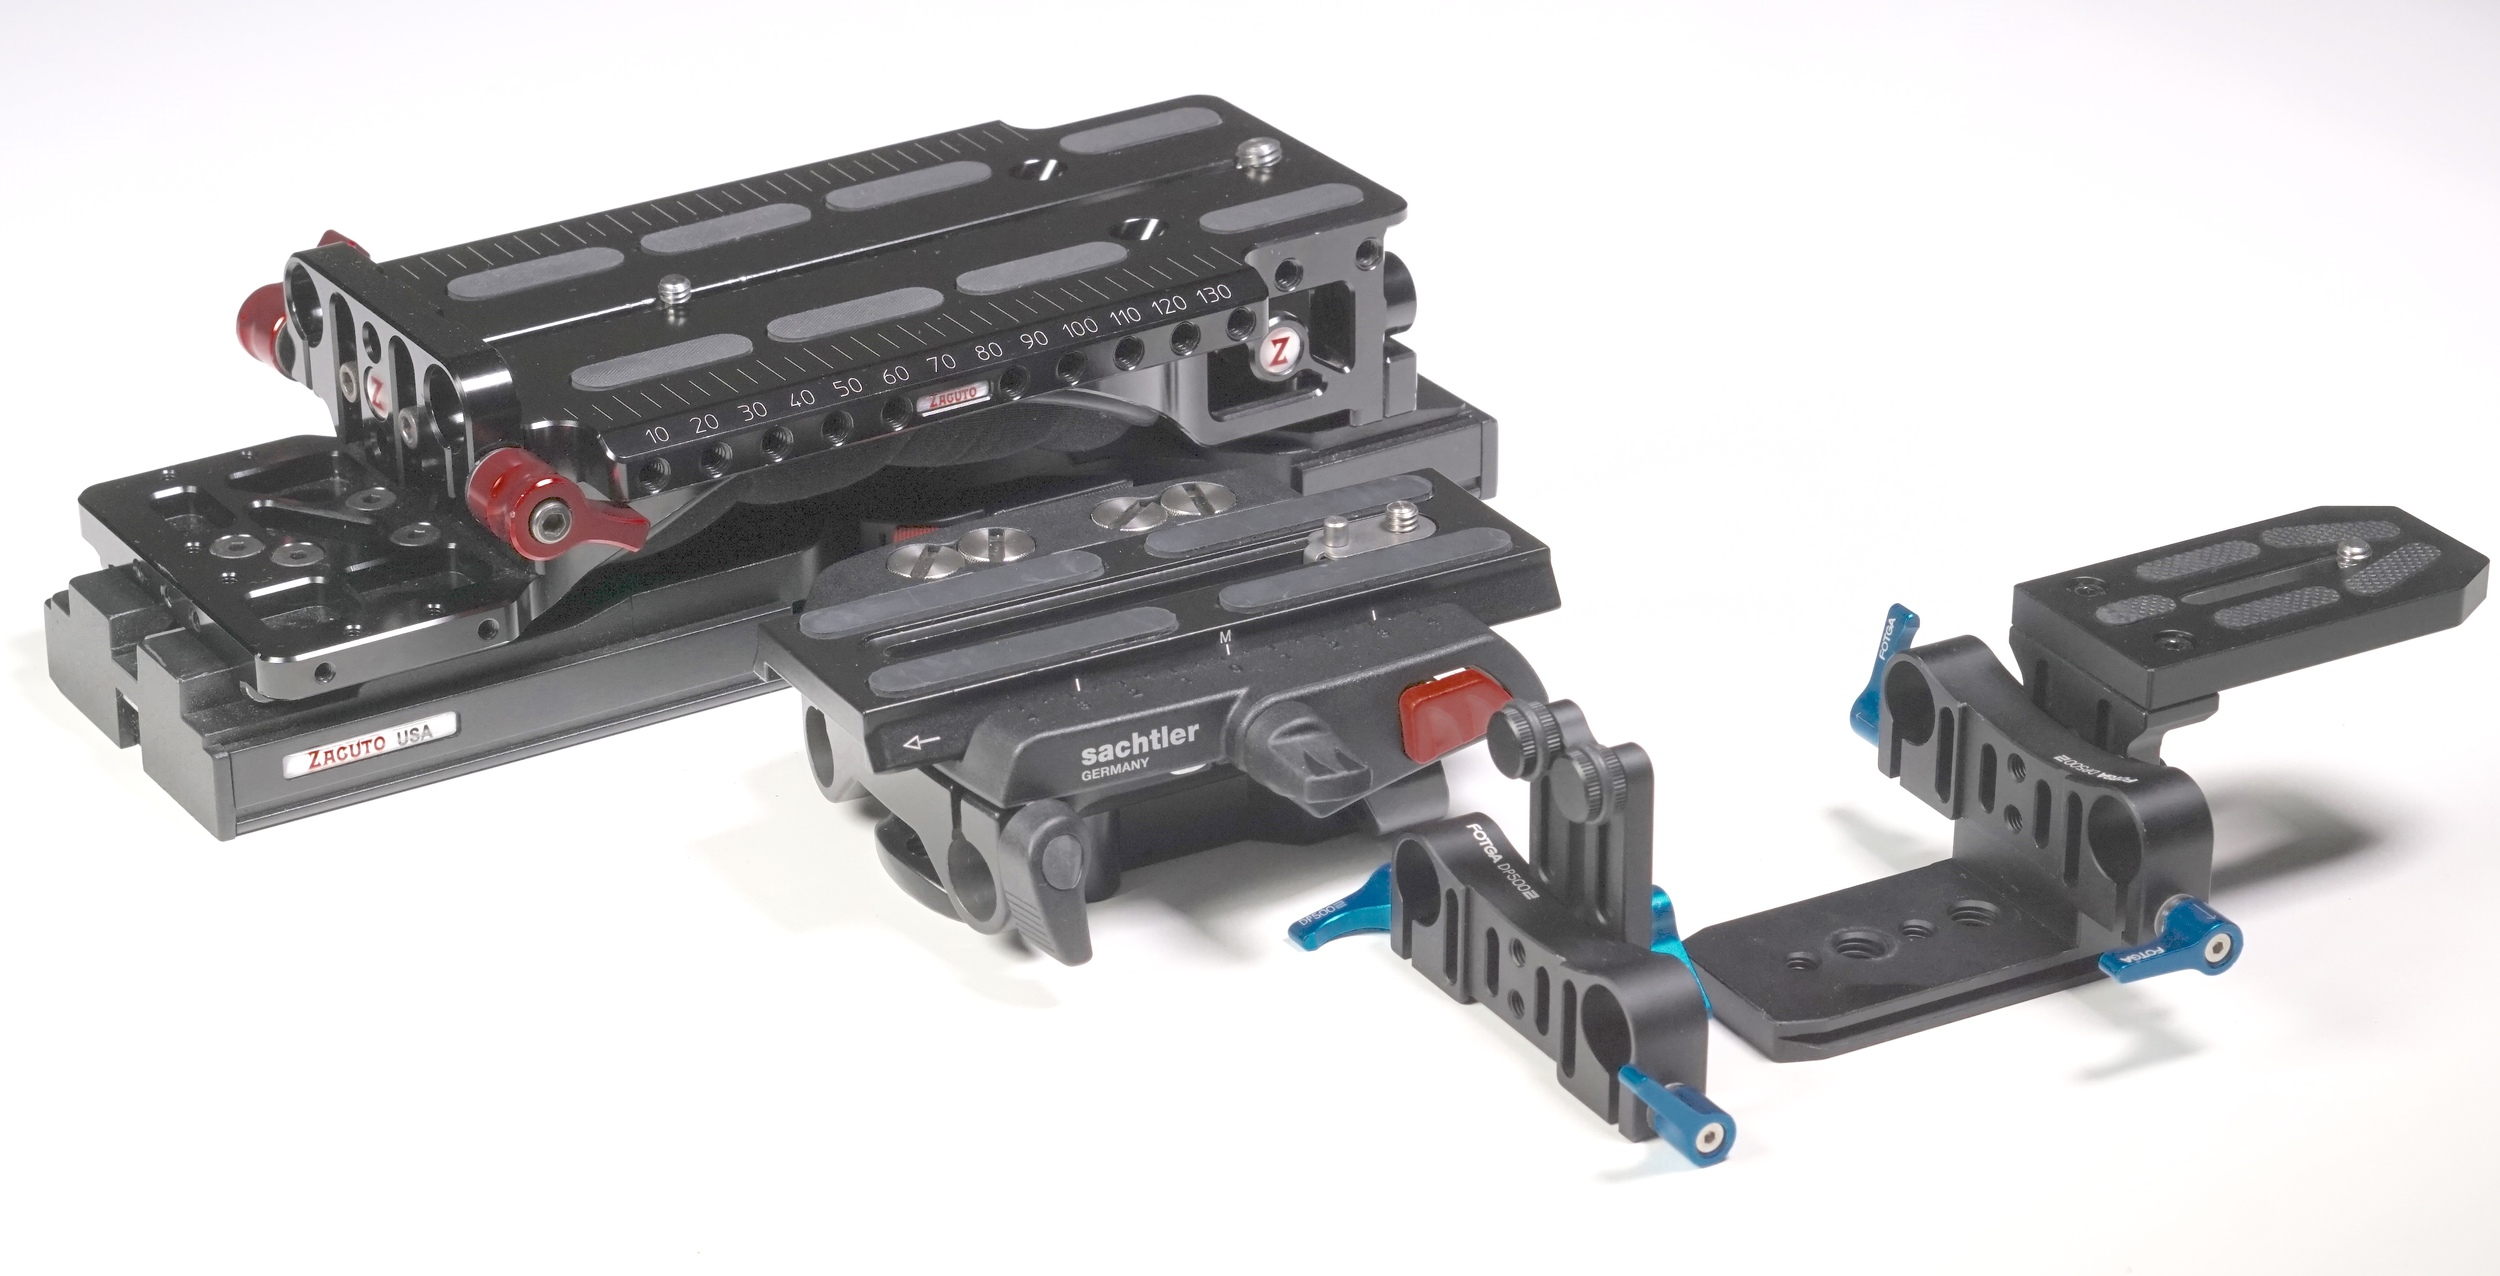 Left to right:  Zacuto VCT Universal Baseplate  and  Tripod Plate ,  Sachtler Ace Base Plate , and  FOTGA DP500  equivalent (notice that the FOTGA locking clamps are separate assemblies).